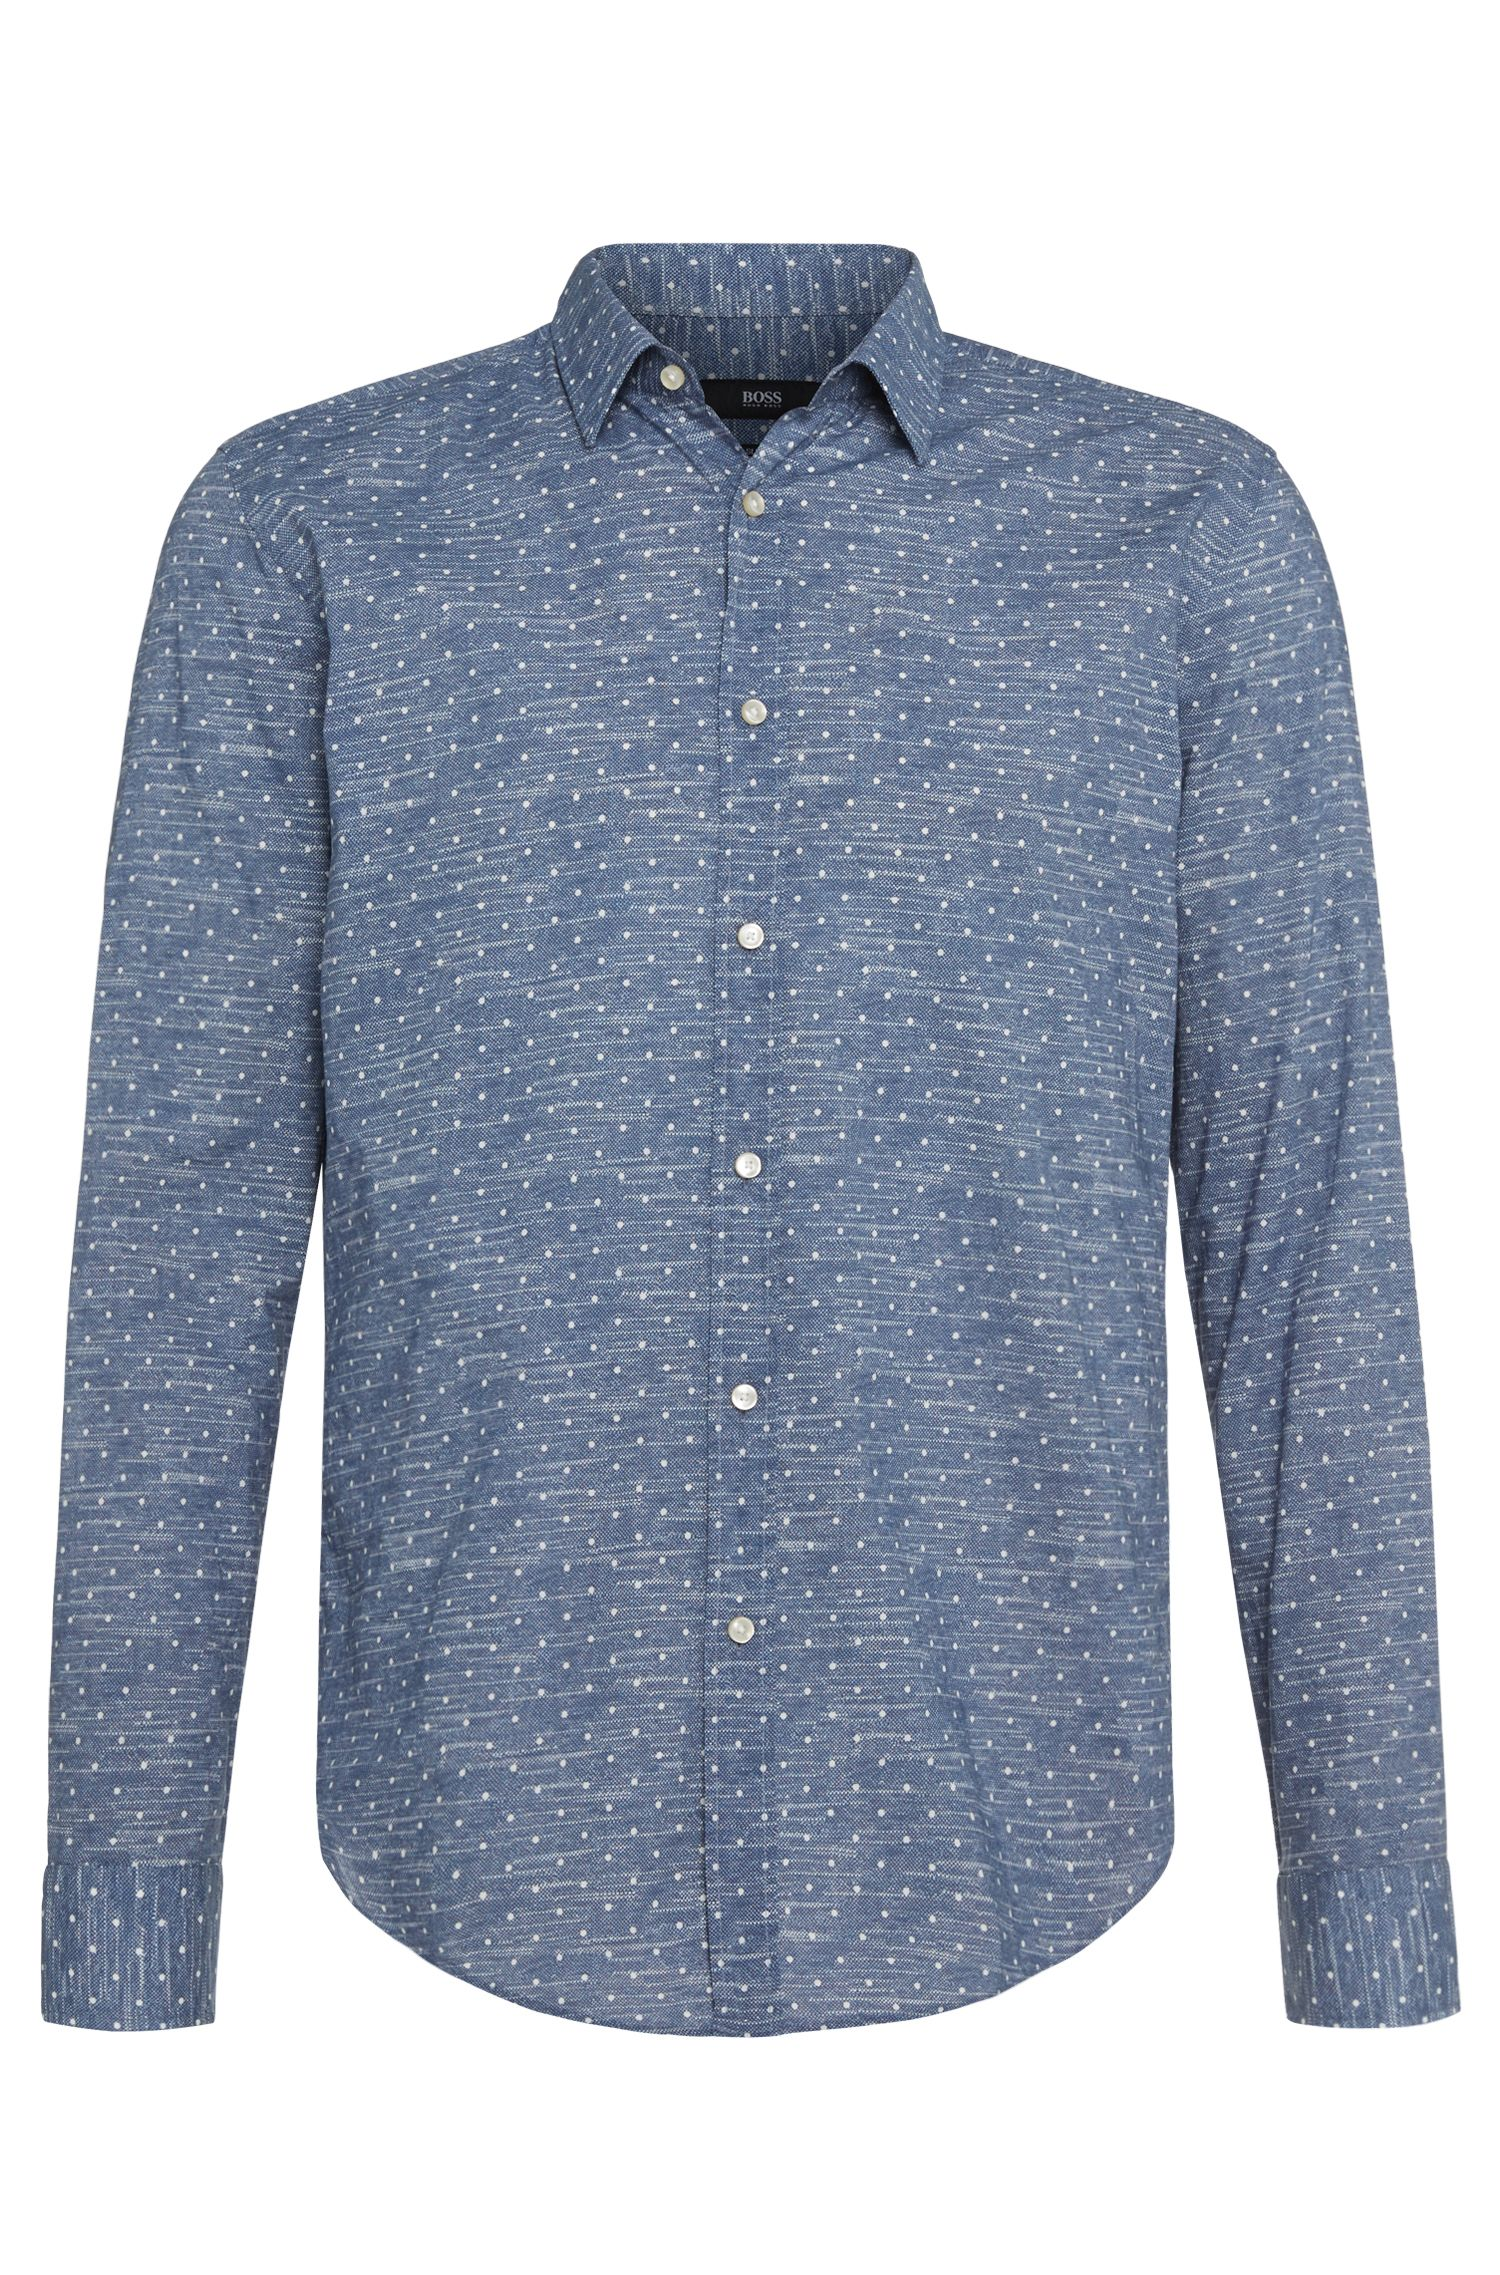 'Ronni' | Slim Fit, Italian Cotton Jersey Dot Shirt